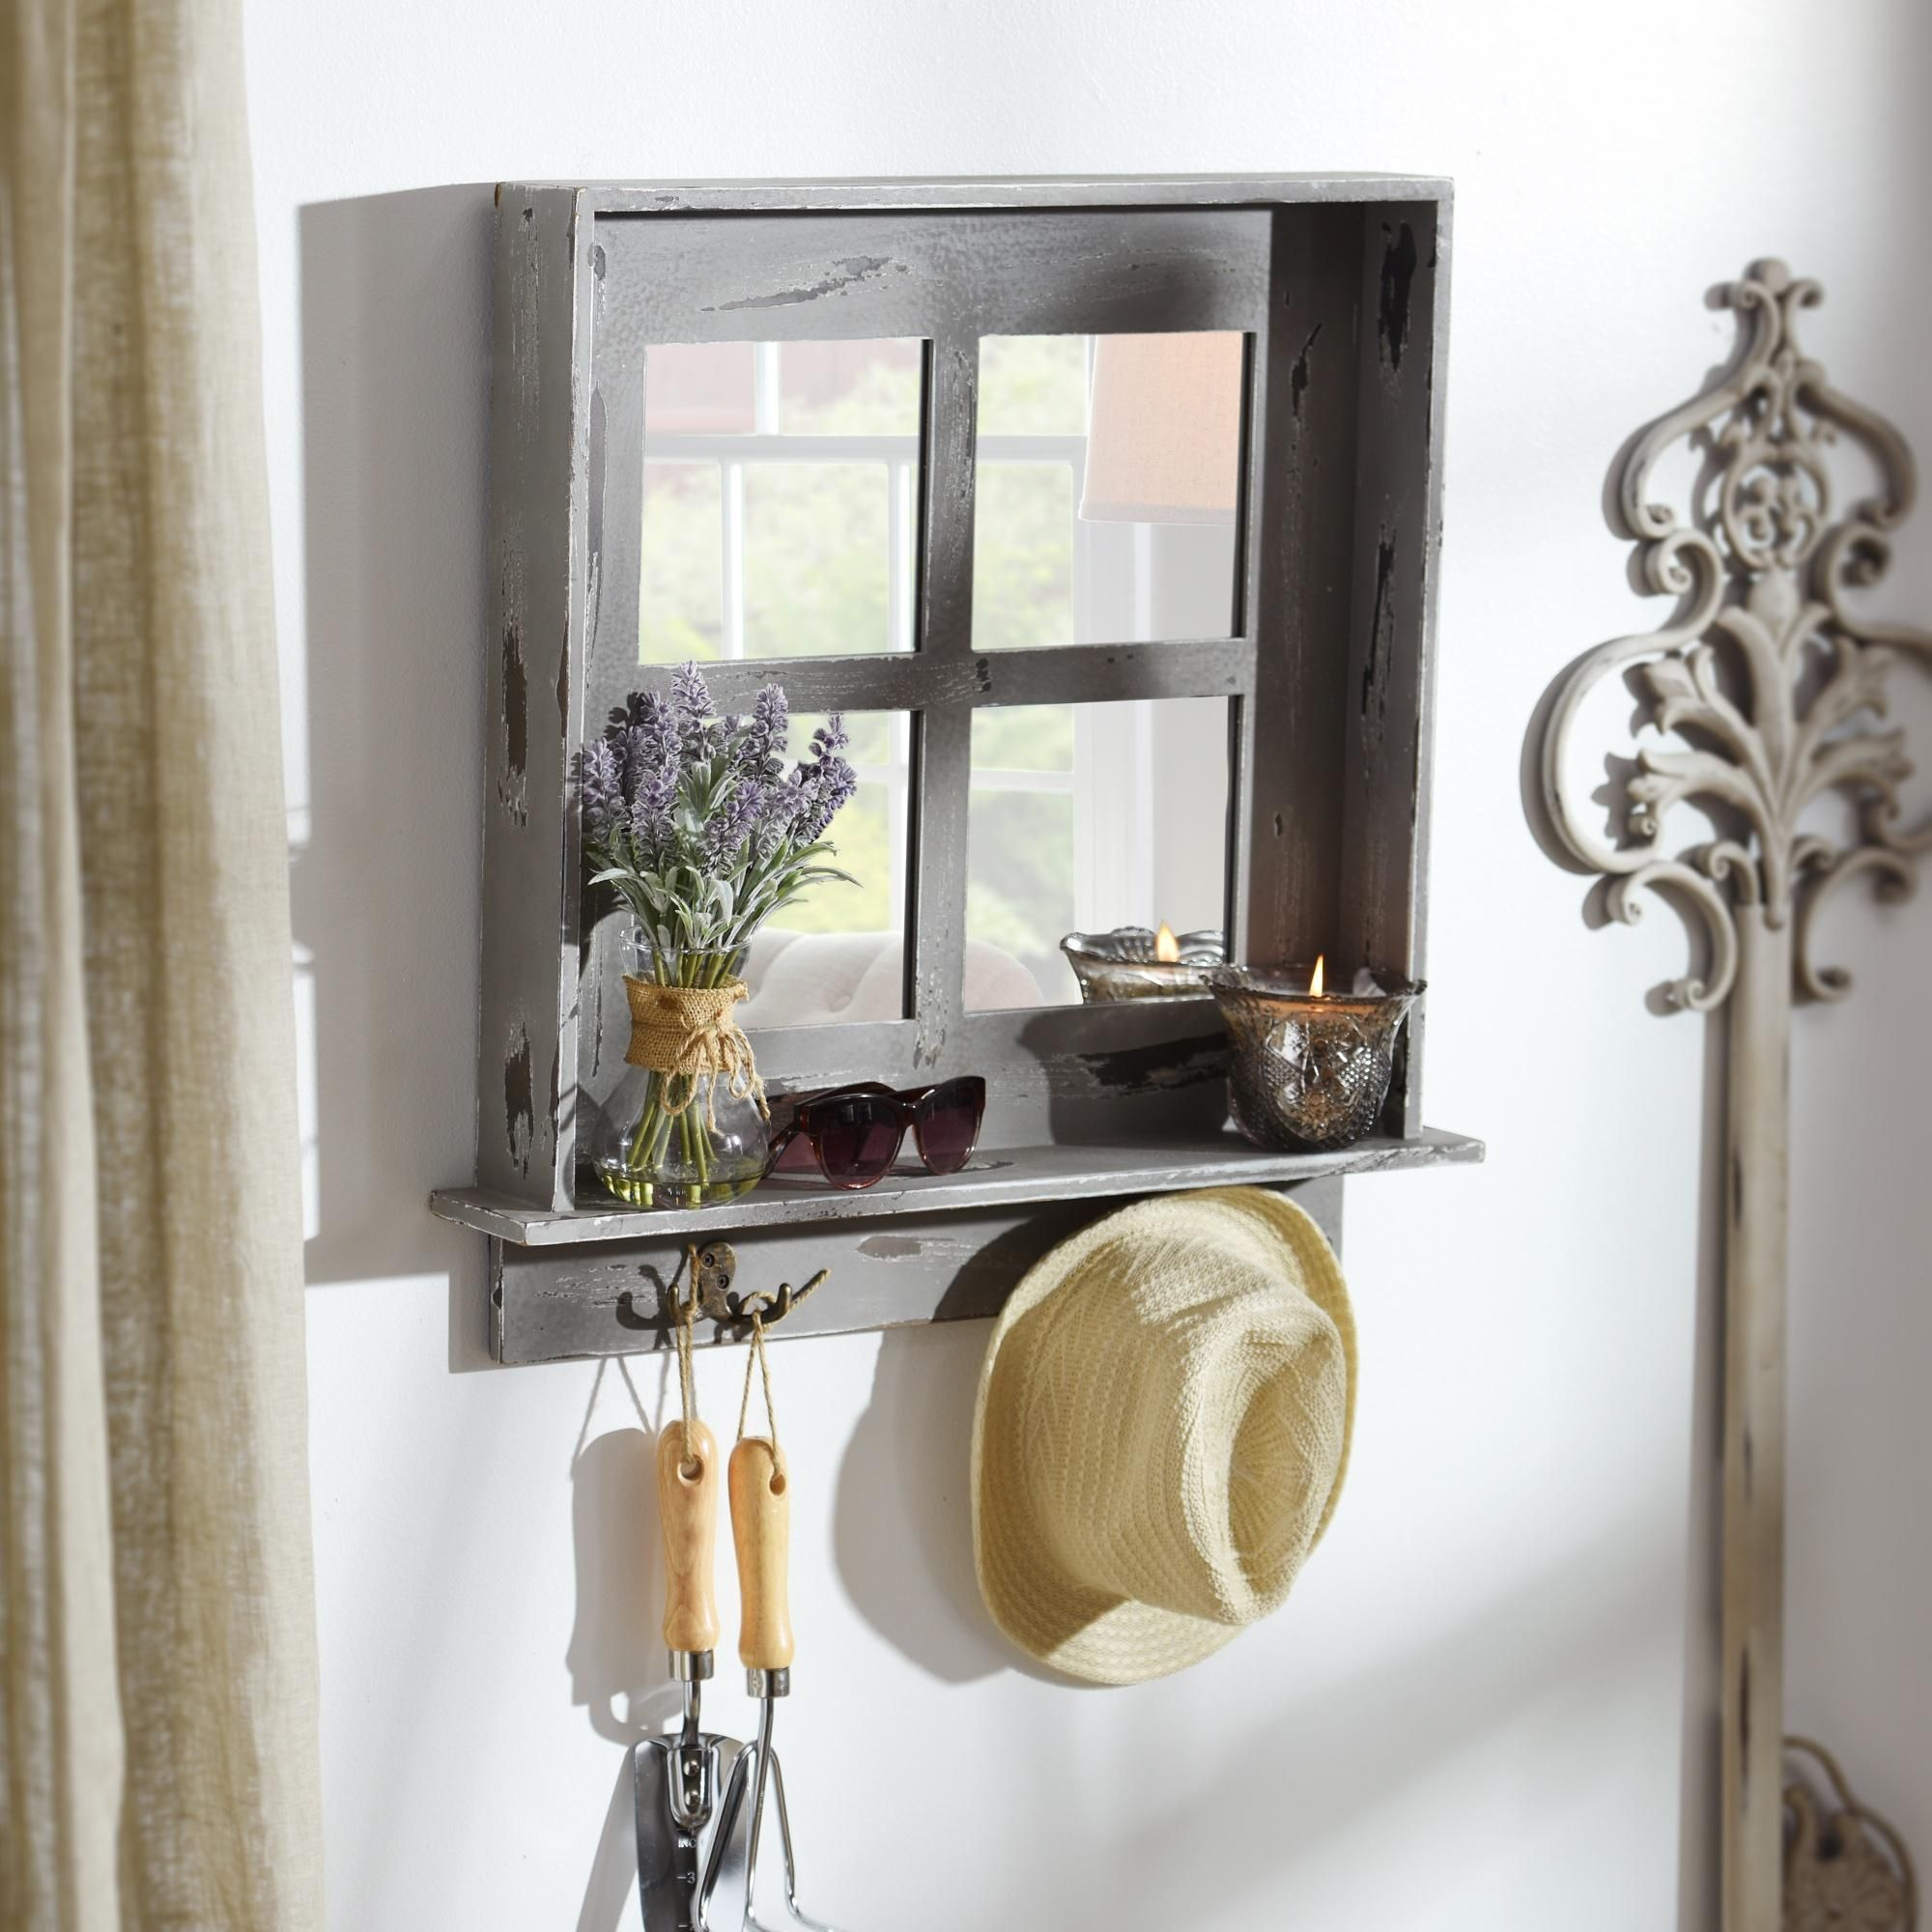 Gray Window Pane Wall Shelf Mirror With Hooks Old Window